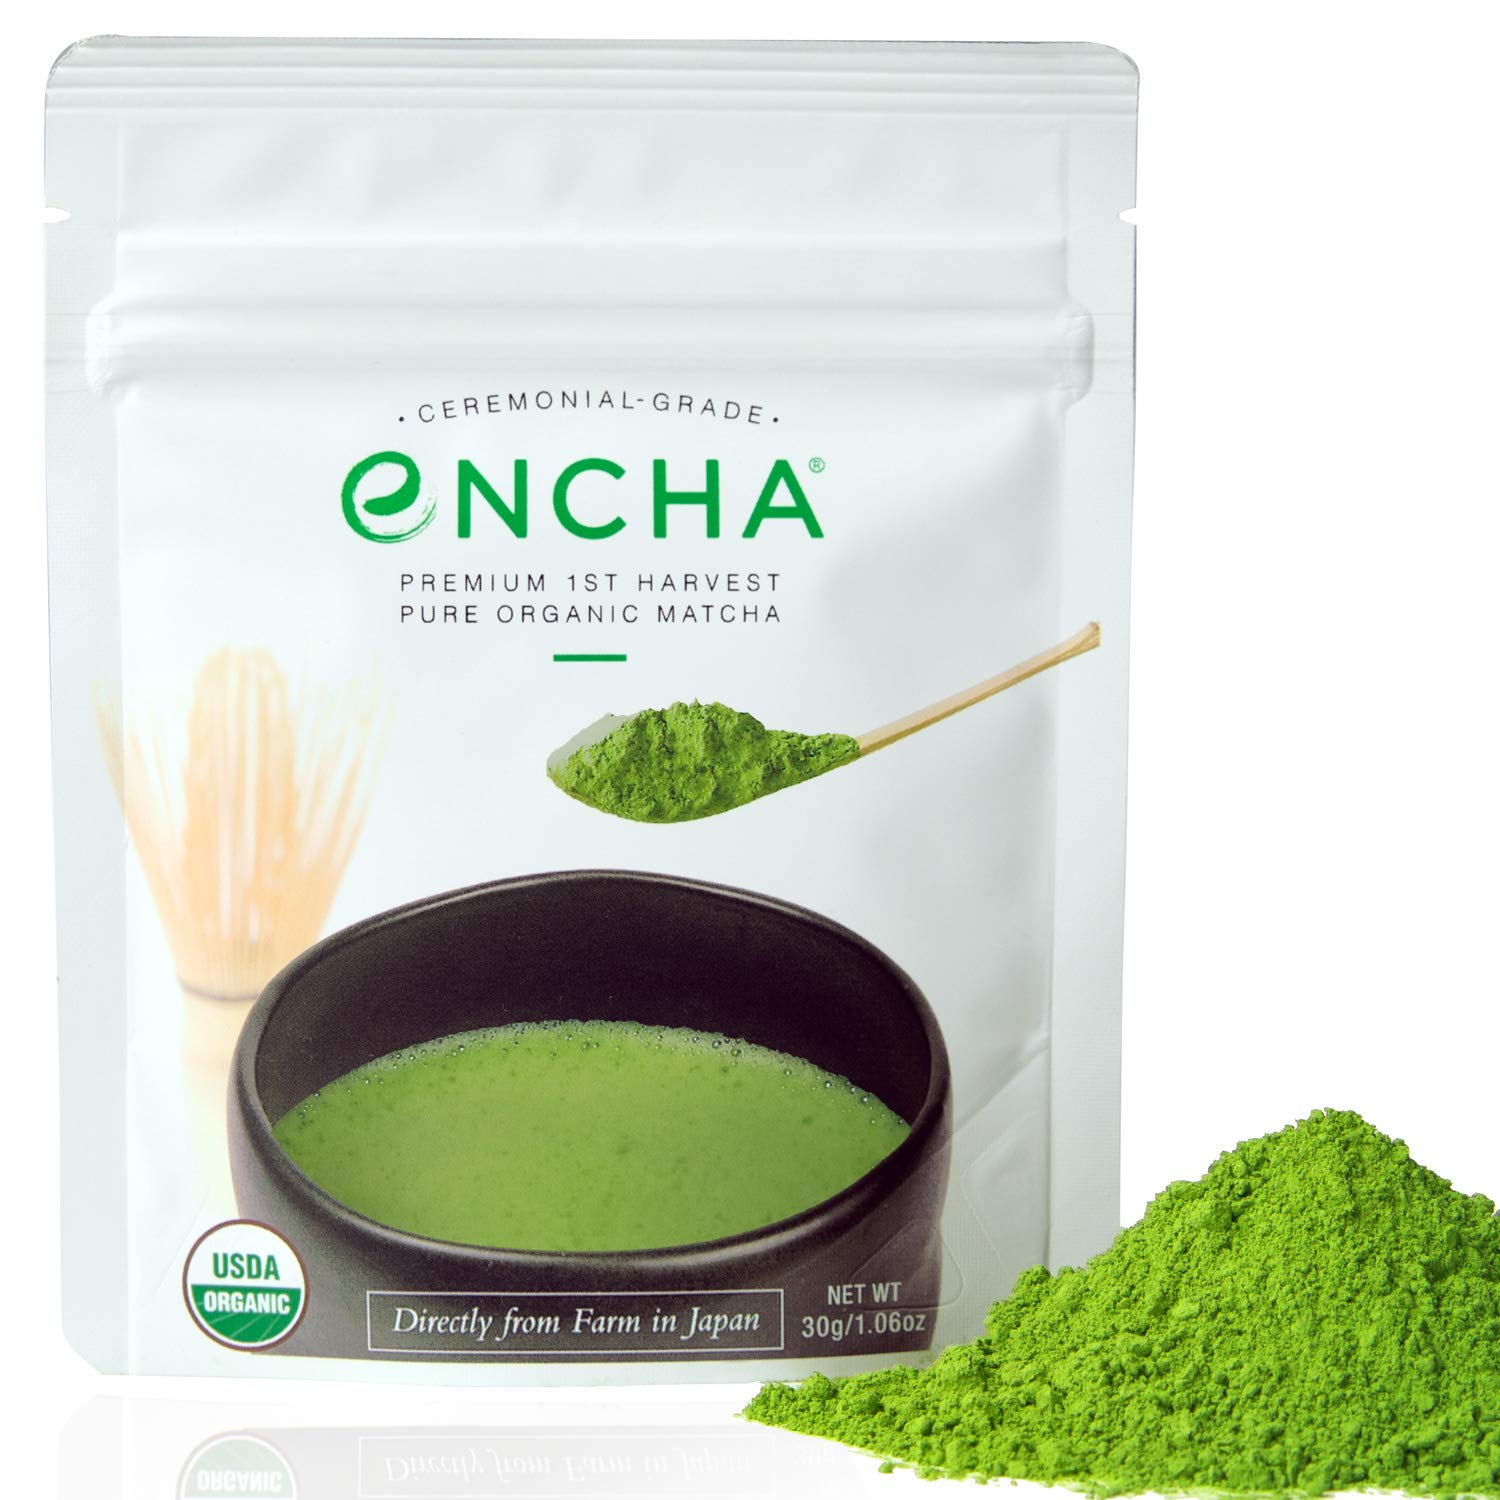 Encha Ceremonial Organic Matcha (USDA Organic Certificate and Antioxidant Content Listed, Premium First Harvest Directly from Farm in Uji, Japan, 30g/1.06oz in Resealable Pouch) by Encha (Image #1)